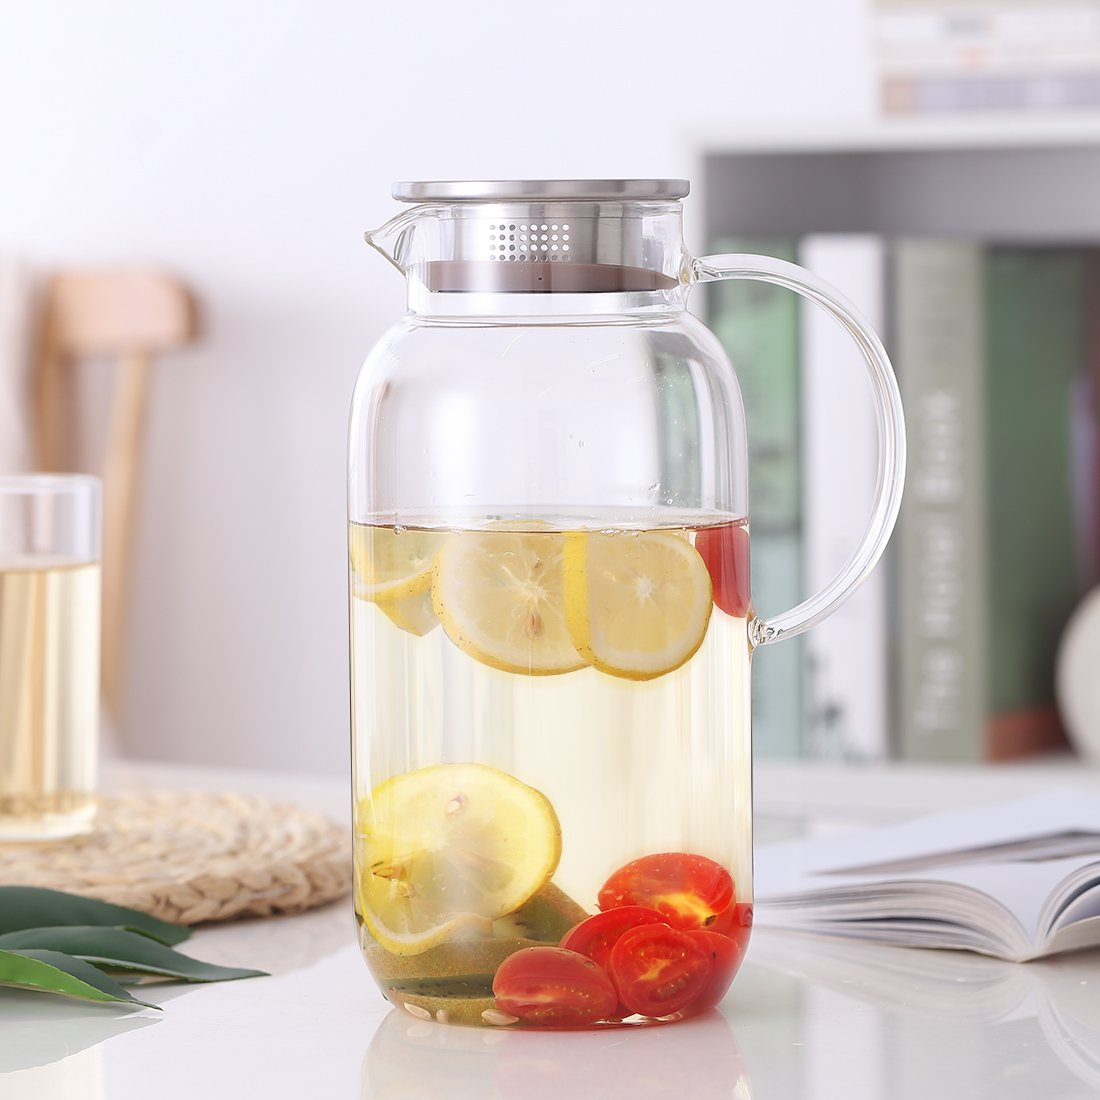 Ice Tea GOODESERVE 60OZ Large Capacity Water Carafe Glass Pitcher with Stainless Steel Lid Borosilicate Jug with Handle for Hot//Cold Water 1800ml Stove-TOP Safe Coffee Juice Beverage